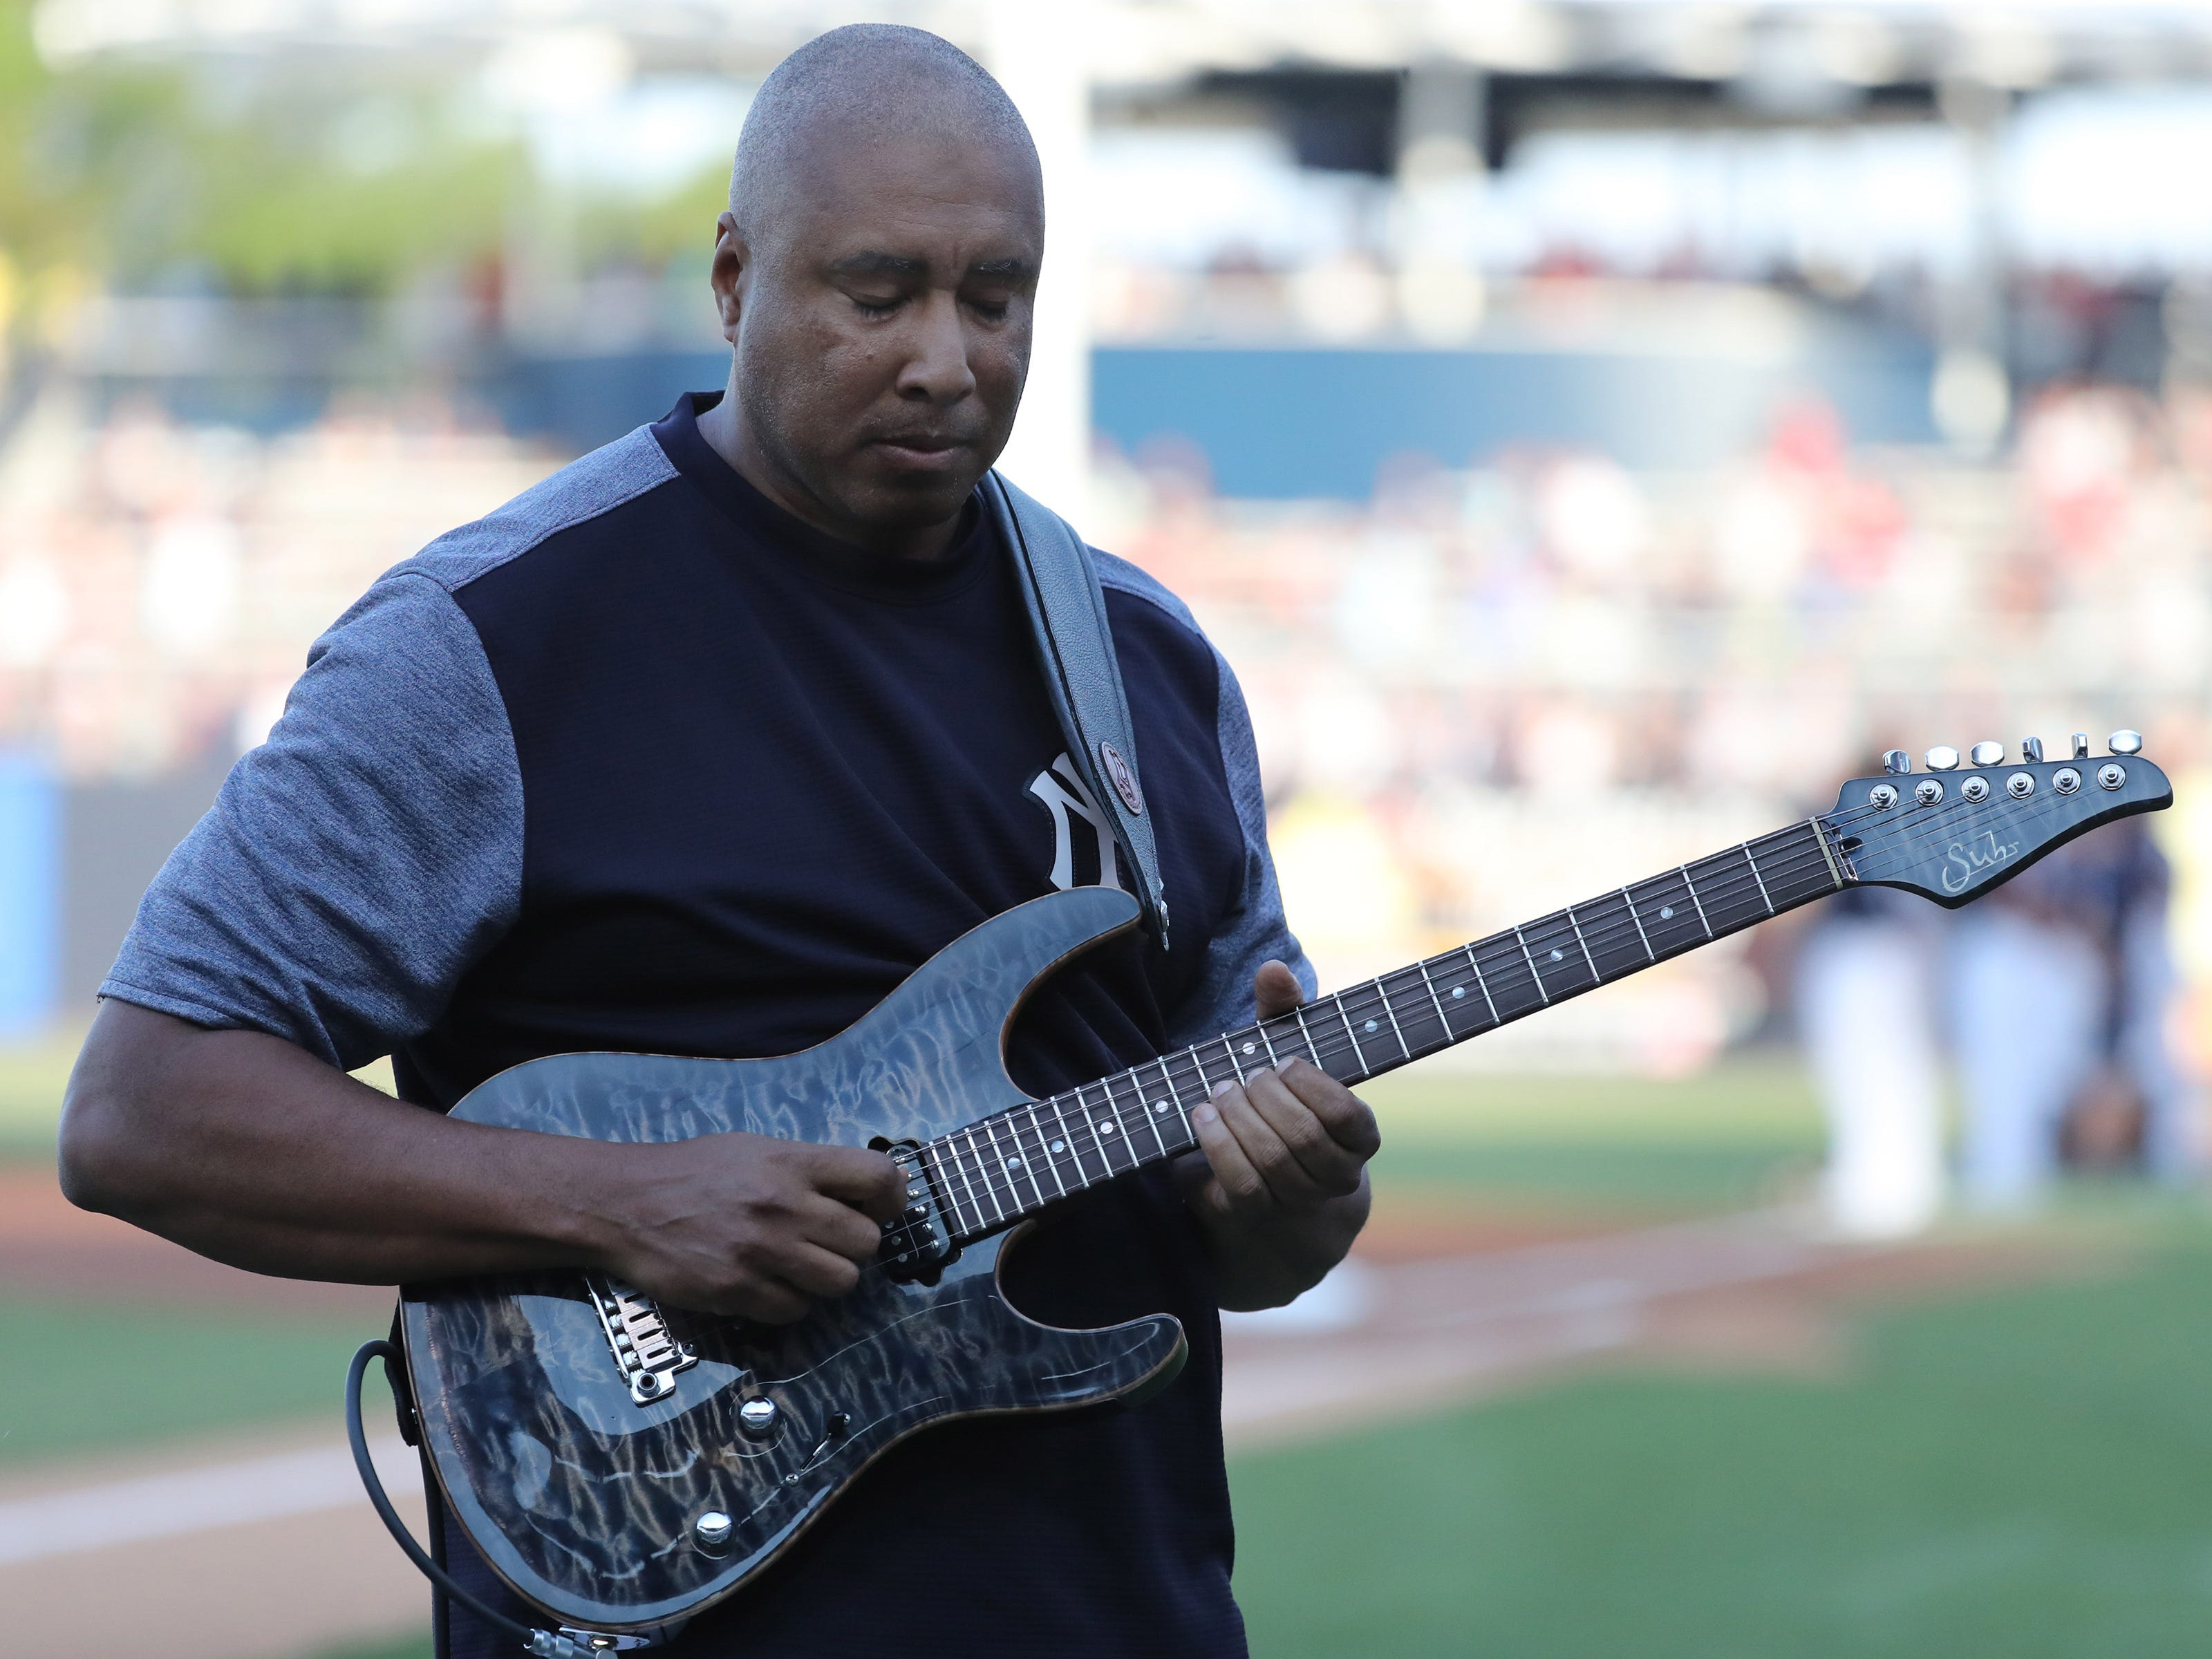 Mar 13, 2019; Tampa, FL, USA; New York Yankees former player Bernie Williams plays the national anthem on his guitar prior to the game between the New York Yankees and Philadelphia Phillies at George M. Steinbrenner Field.